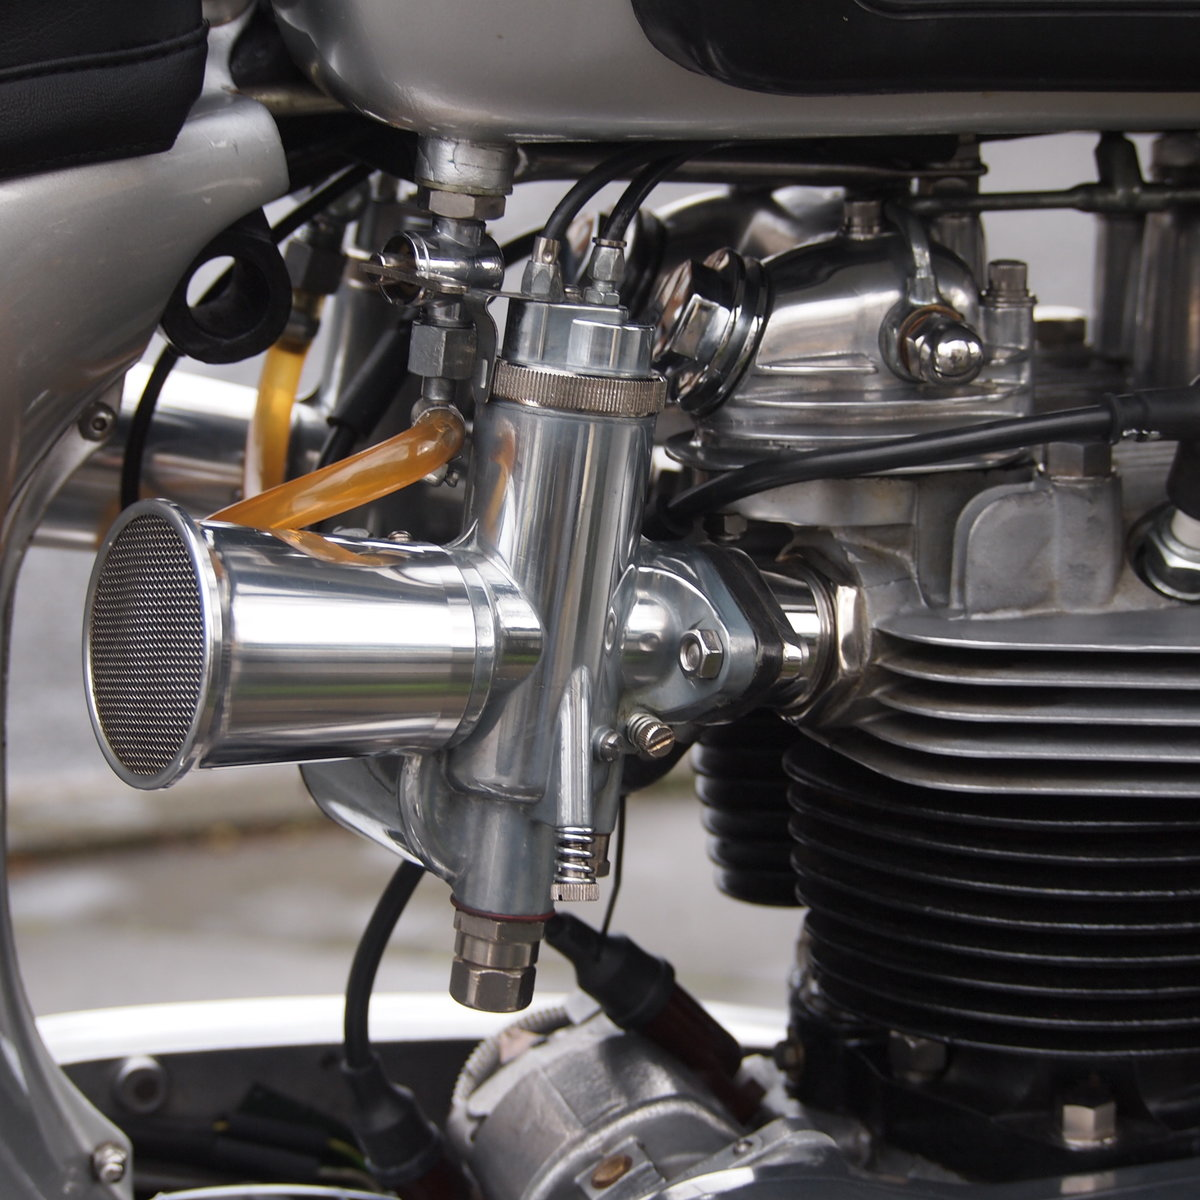 1961 Triumph Tiger T110 650/750 It Goes Like a Rocket. For Sale (picture 4 of 6)